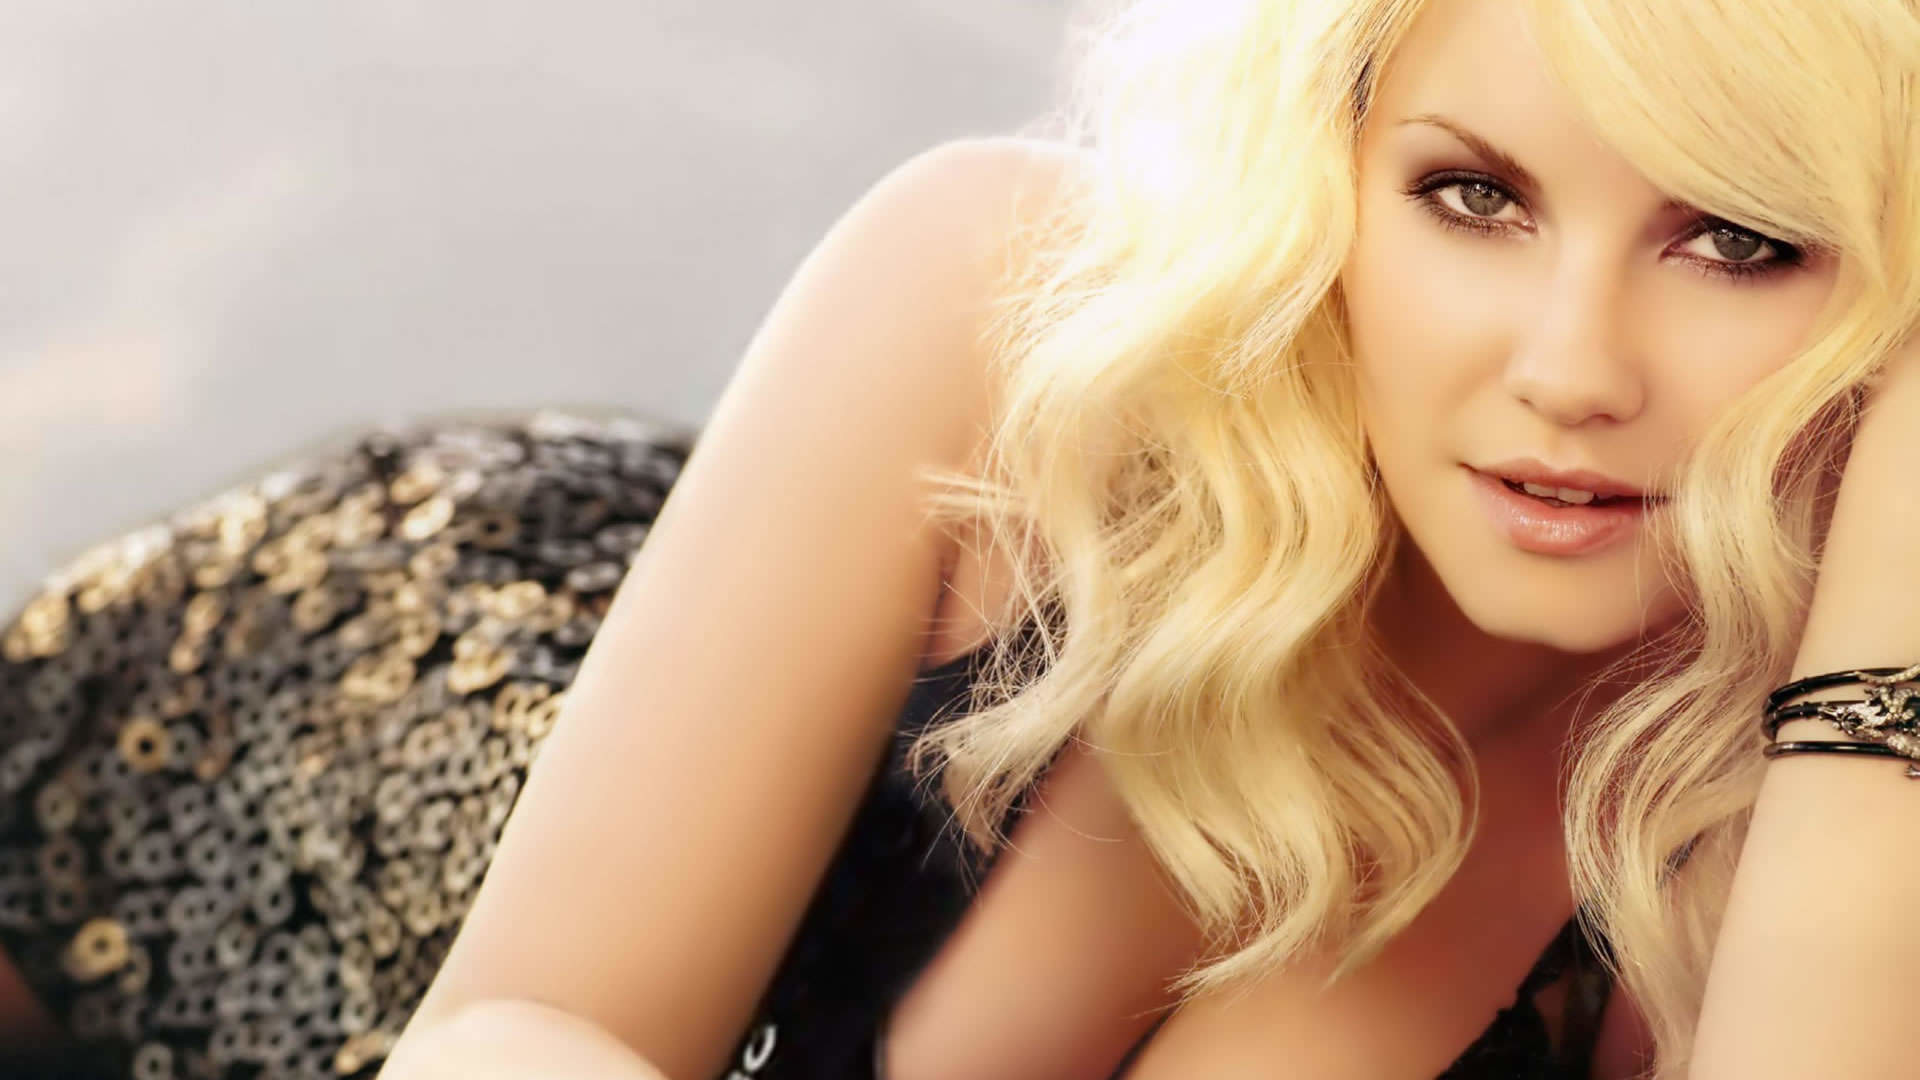 Sexy Hollywood Female Celebrities Babes Desktop Wallpapers